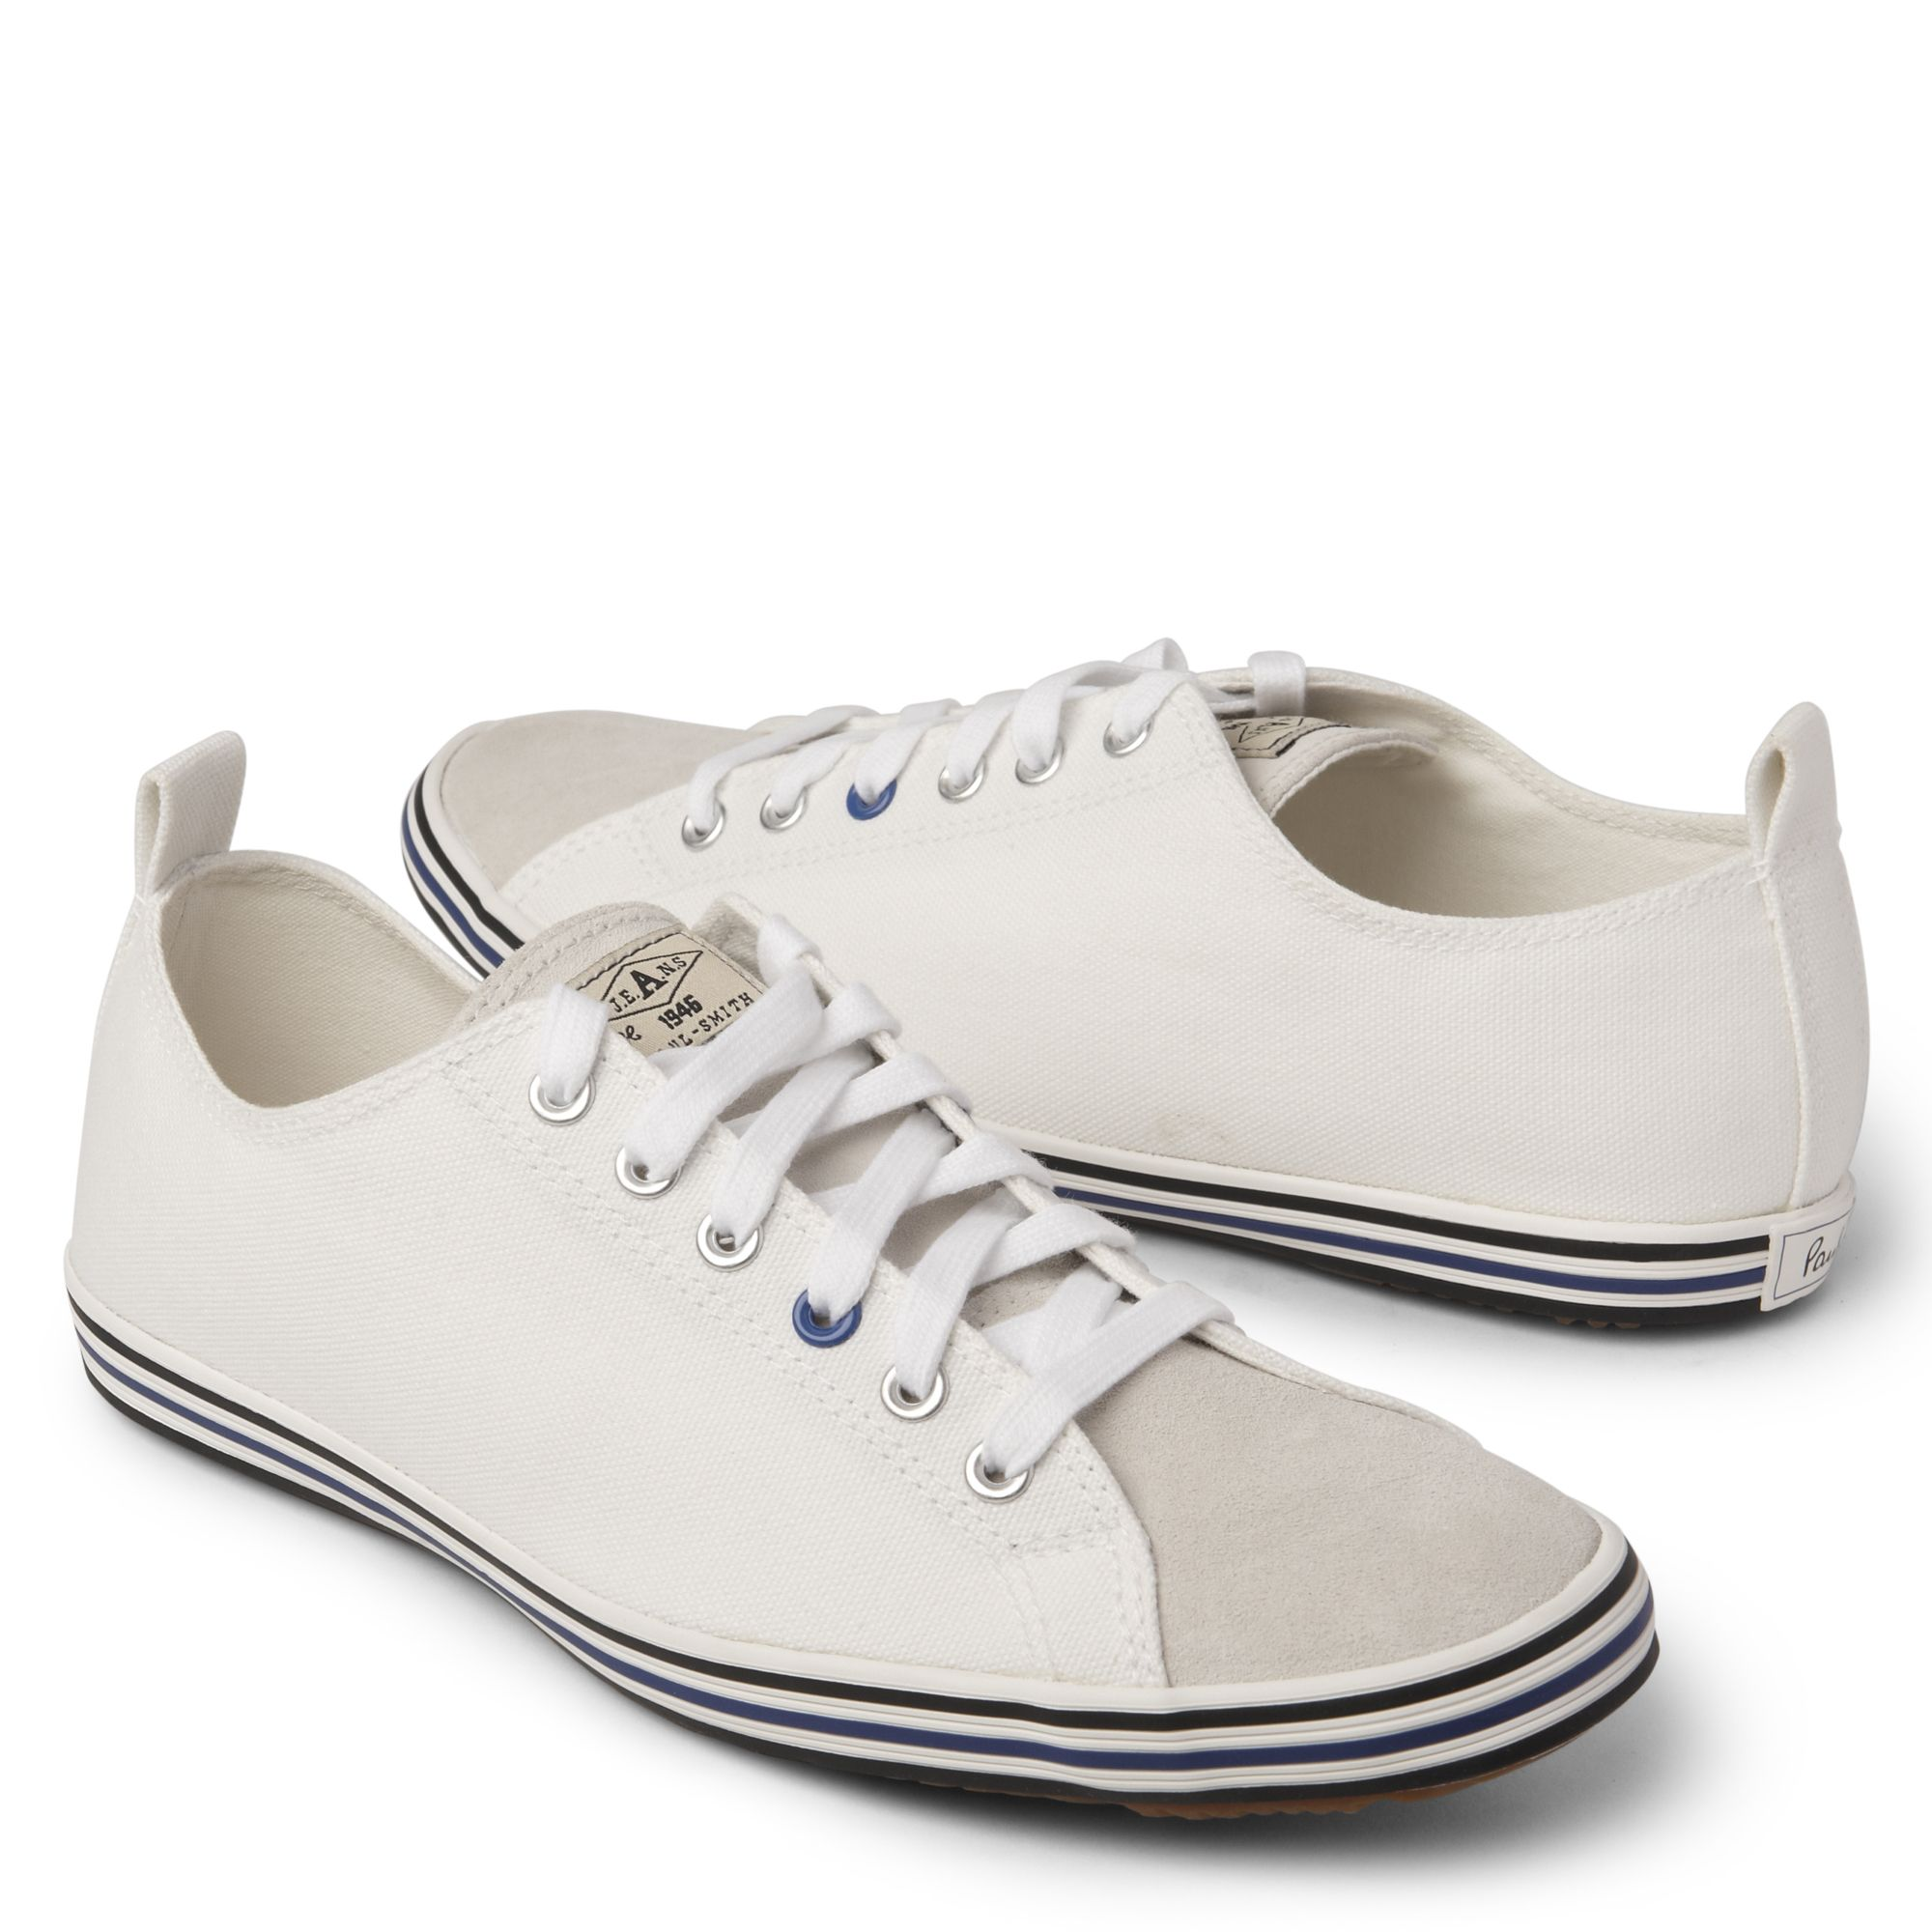 Paul Smith Shoes White Trainer